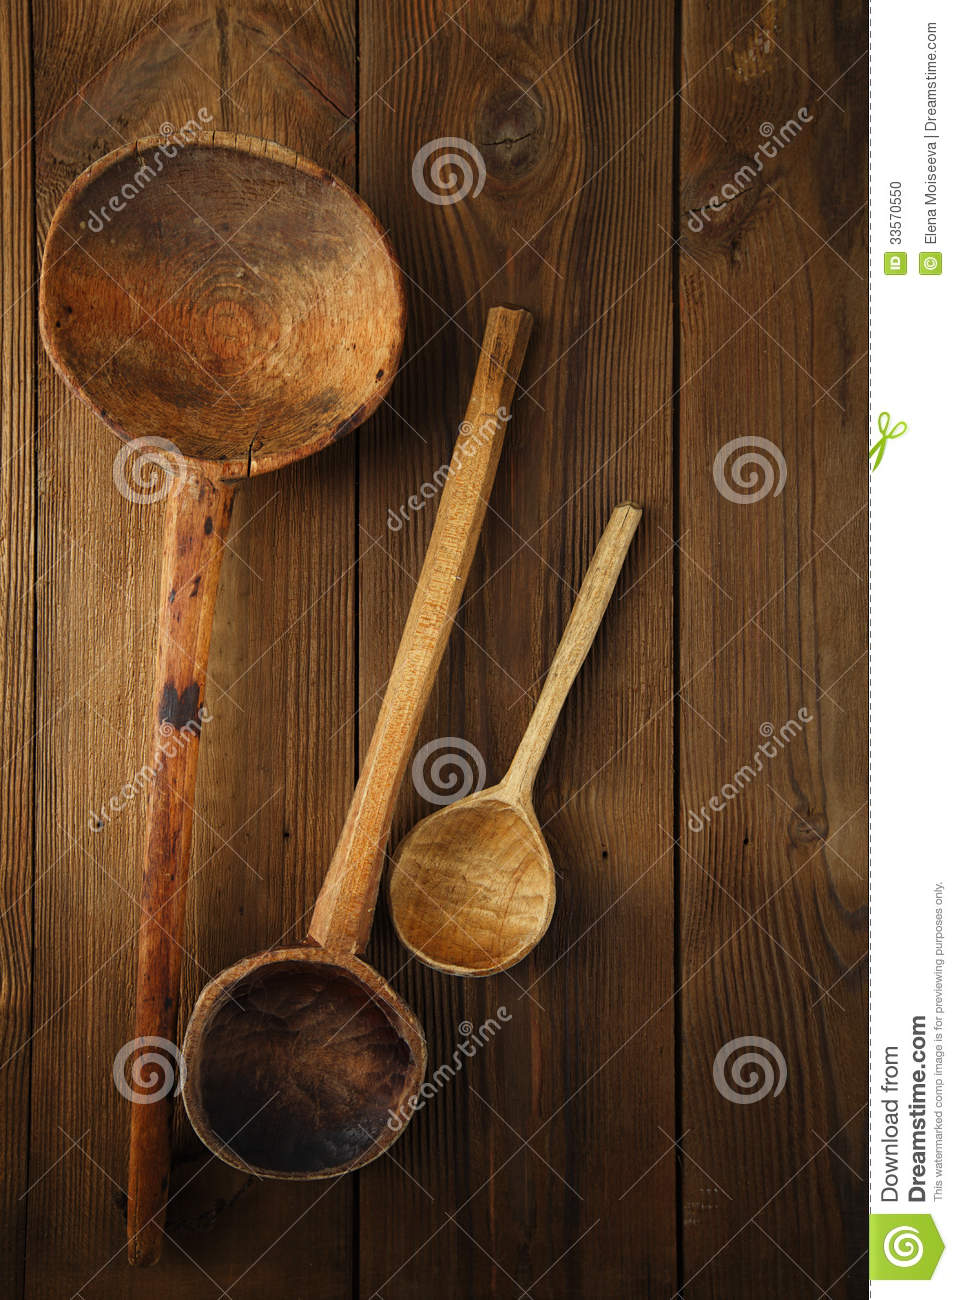 Retro Kitchen Utensils Wood Spoon On Old Wooden Table In